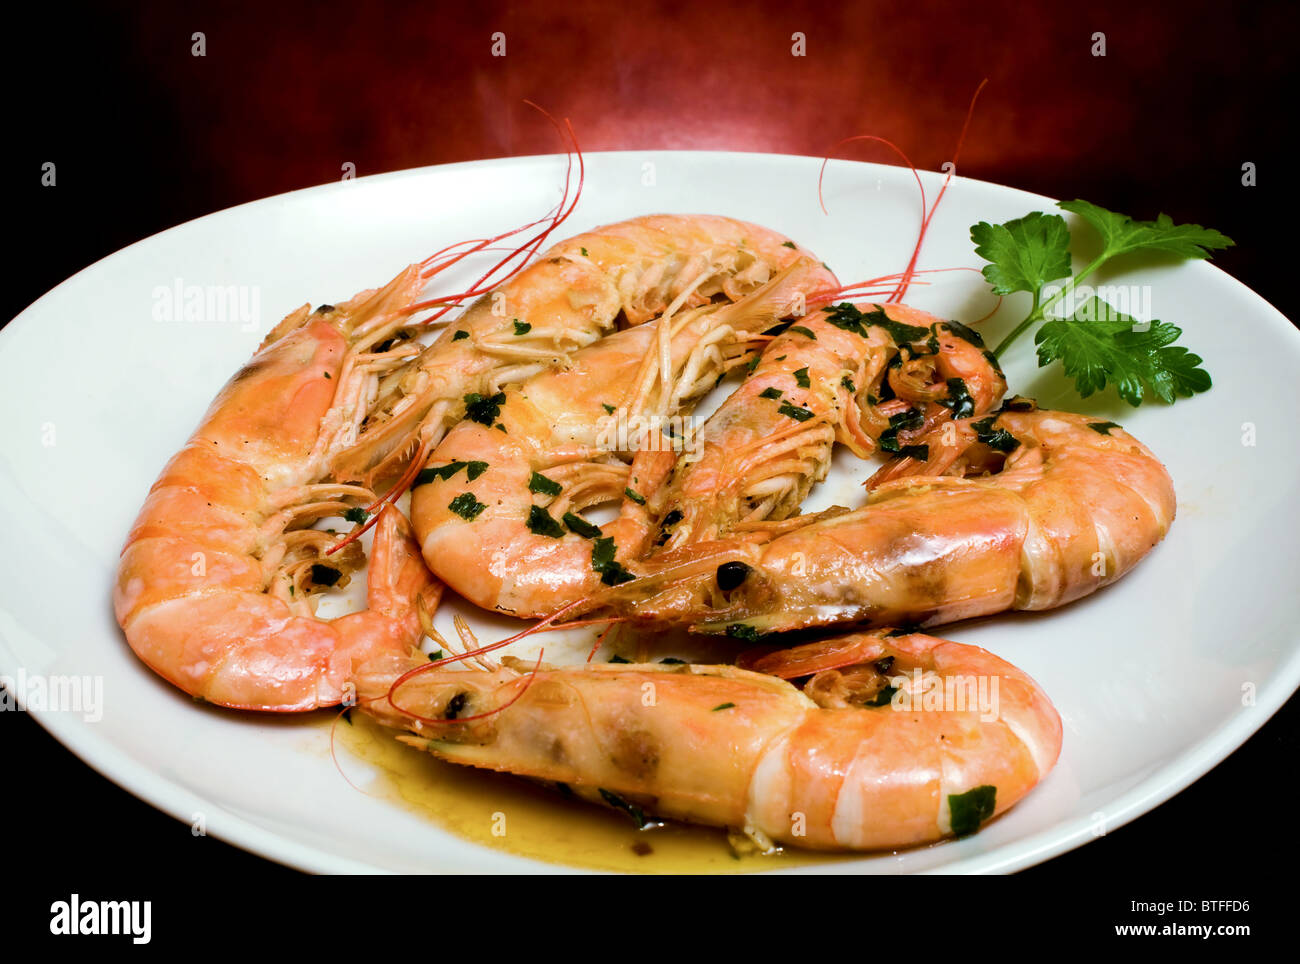 italian traditional christmas dinner food prawns with garlic and parsley stock image - Traditional Italian Christmas Dinner